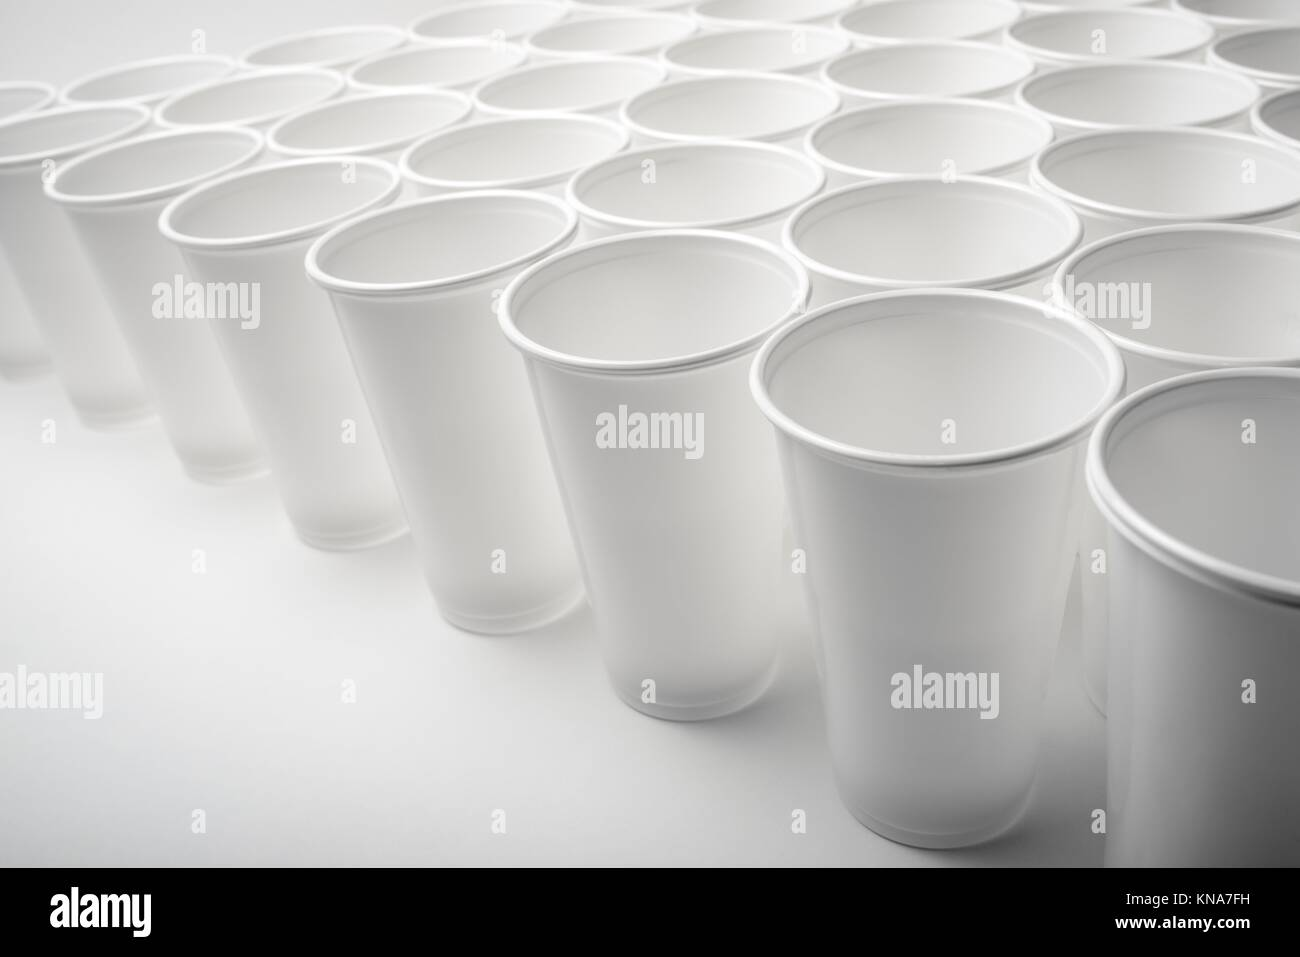 Large group of disposable plastic cups. - Stock Image